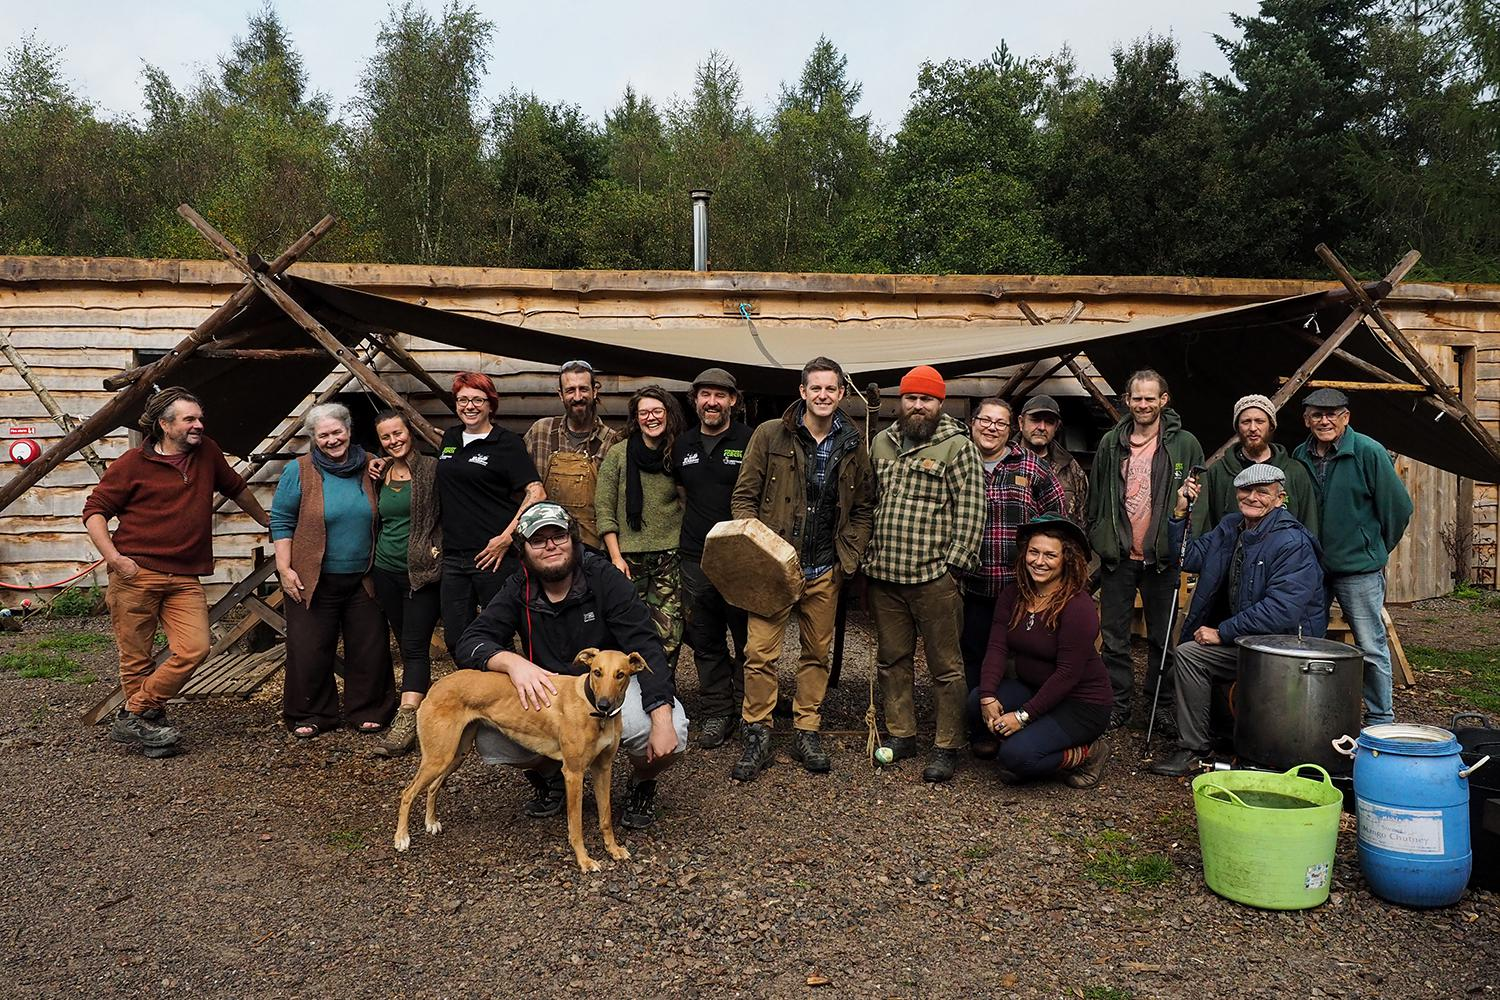 Rewild project forest of dean crew